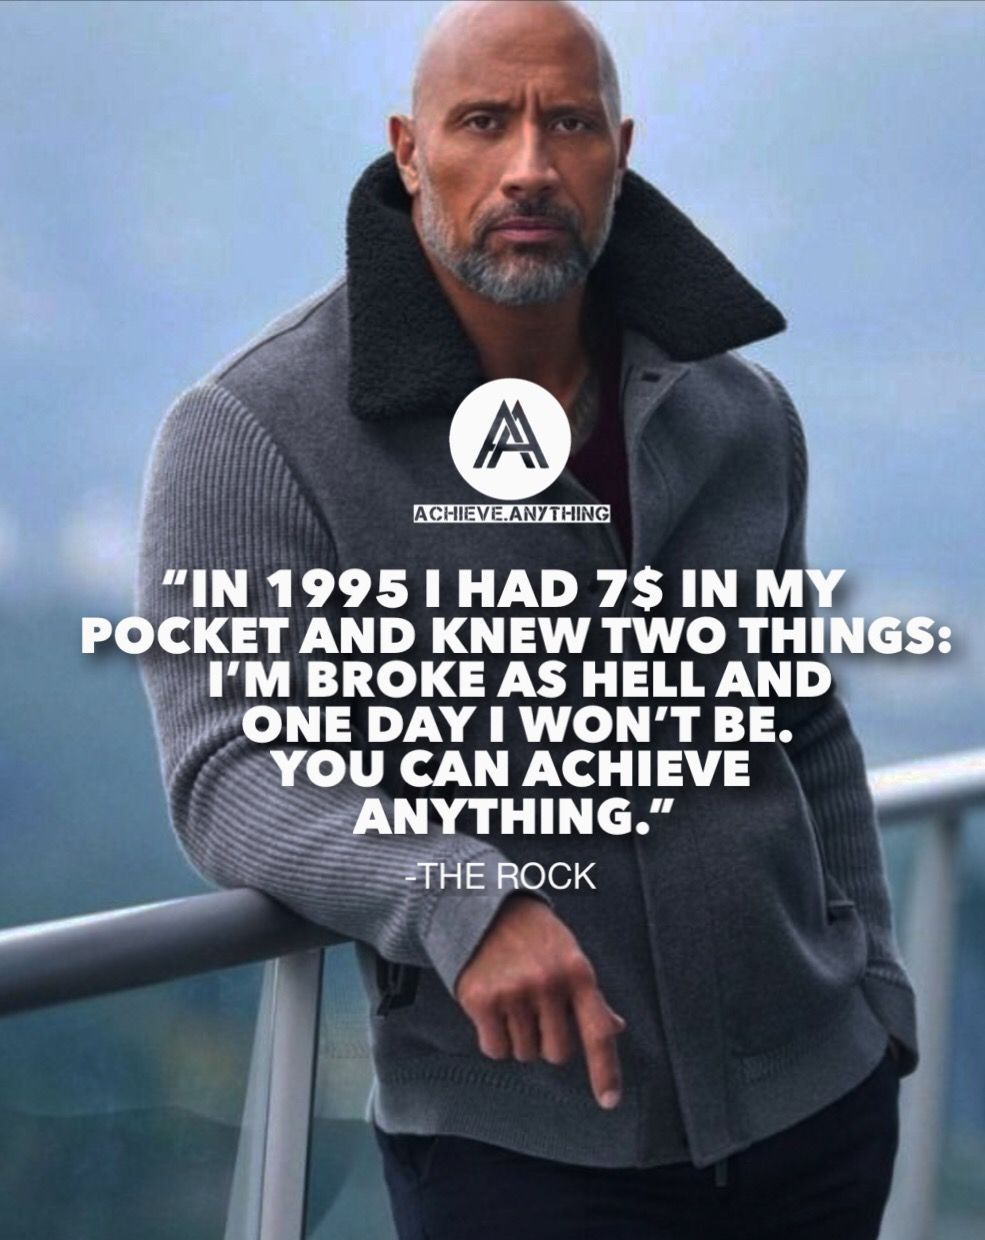 In 1995 I had $7 bucks in my pocket and knew two things: I'm broke as hell and one day I won't be